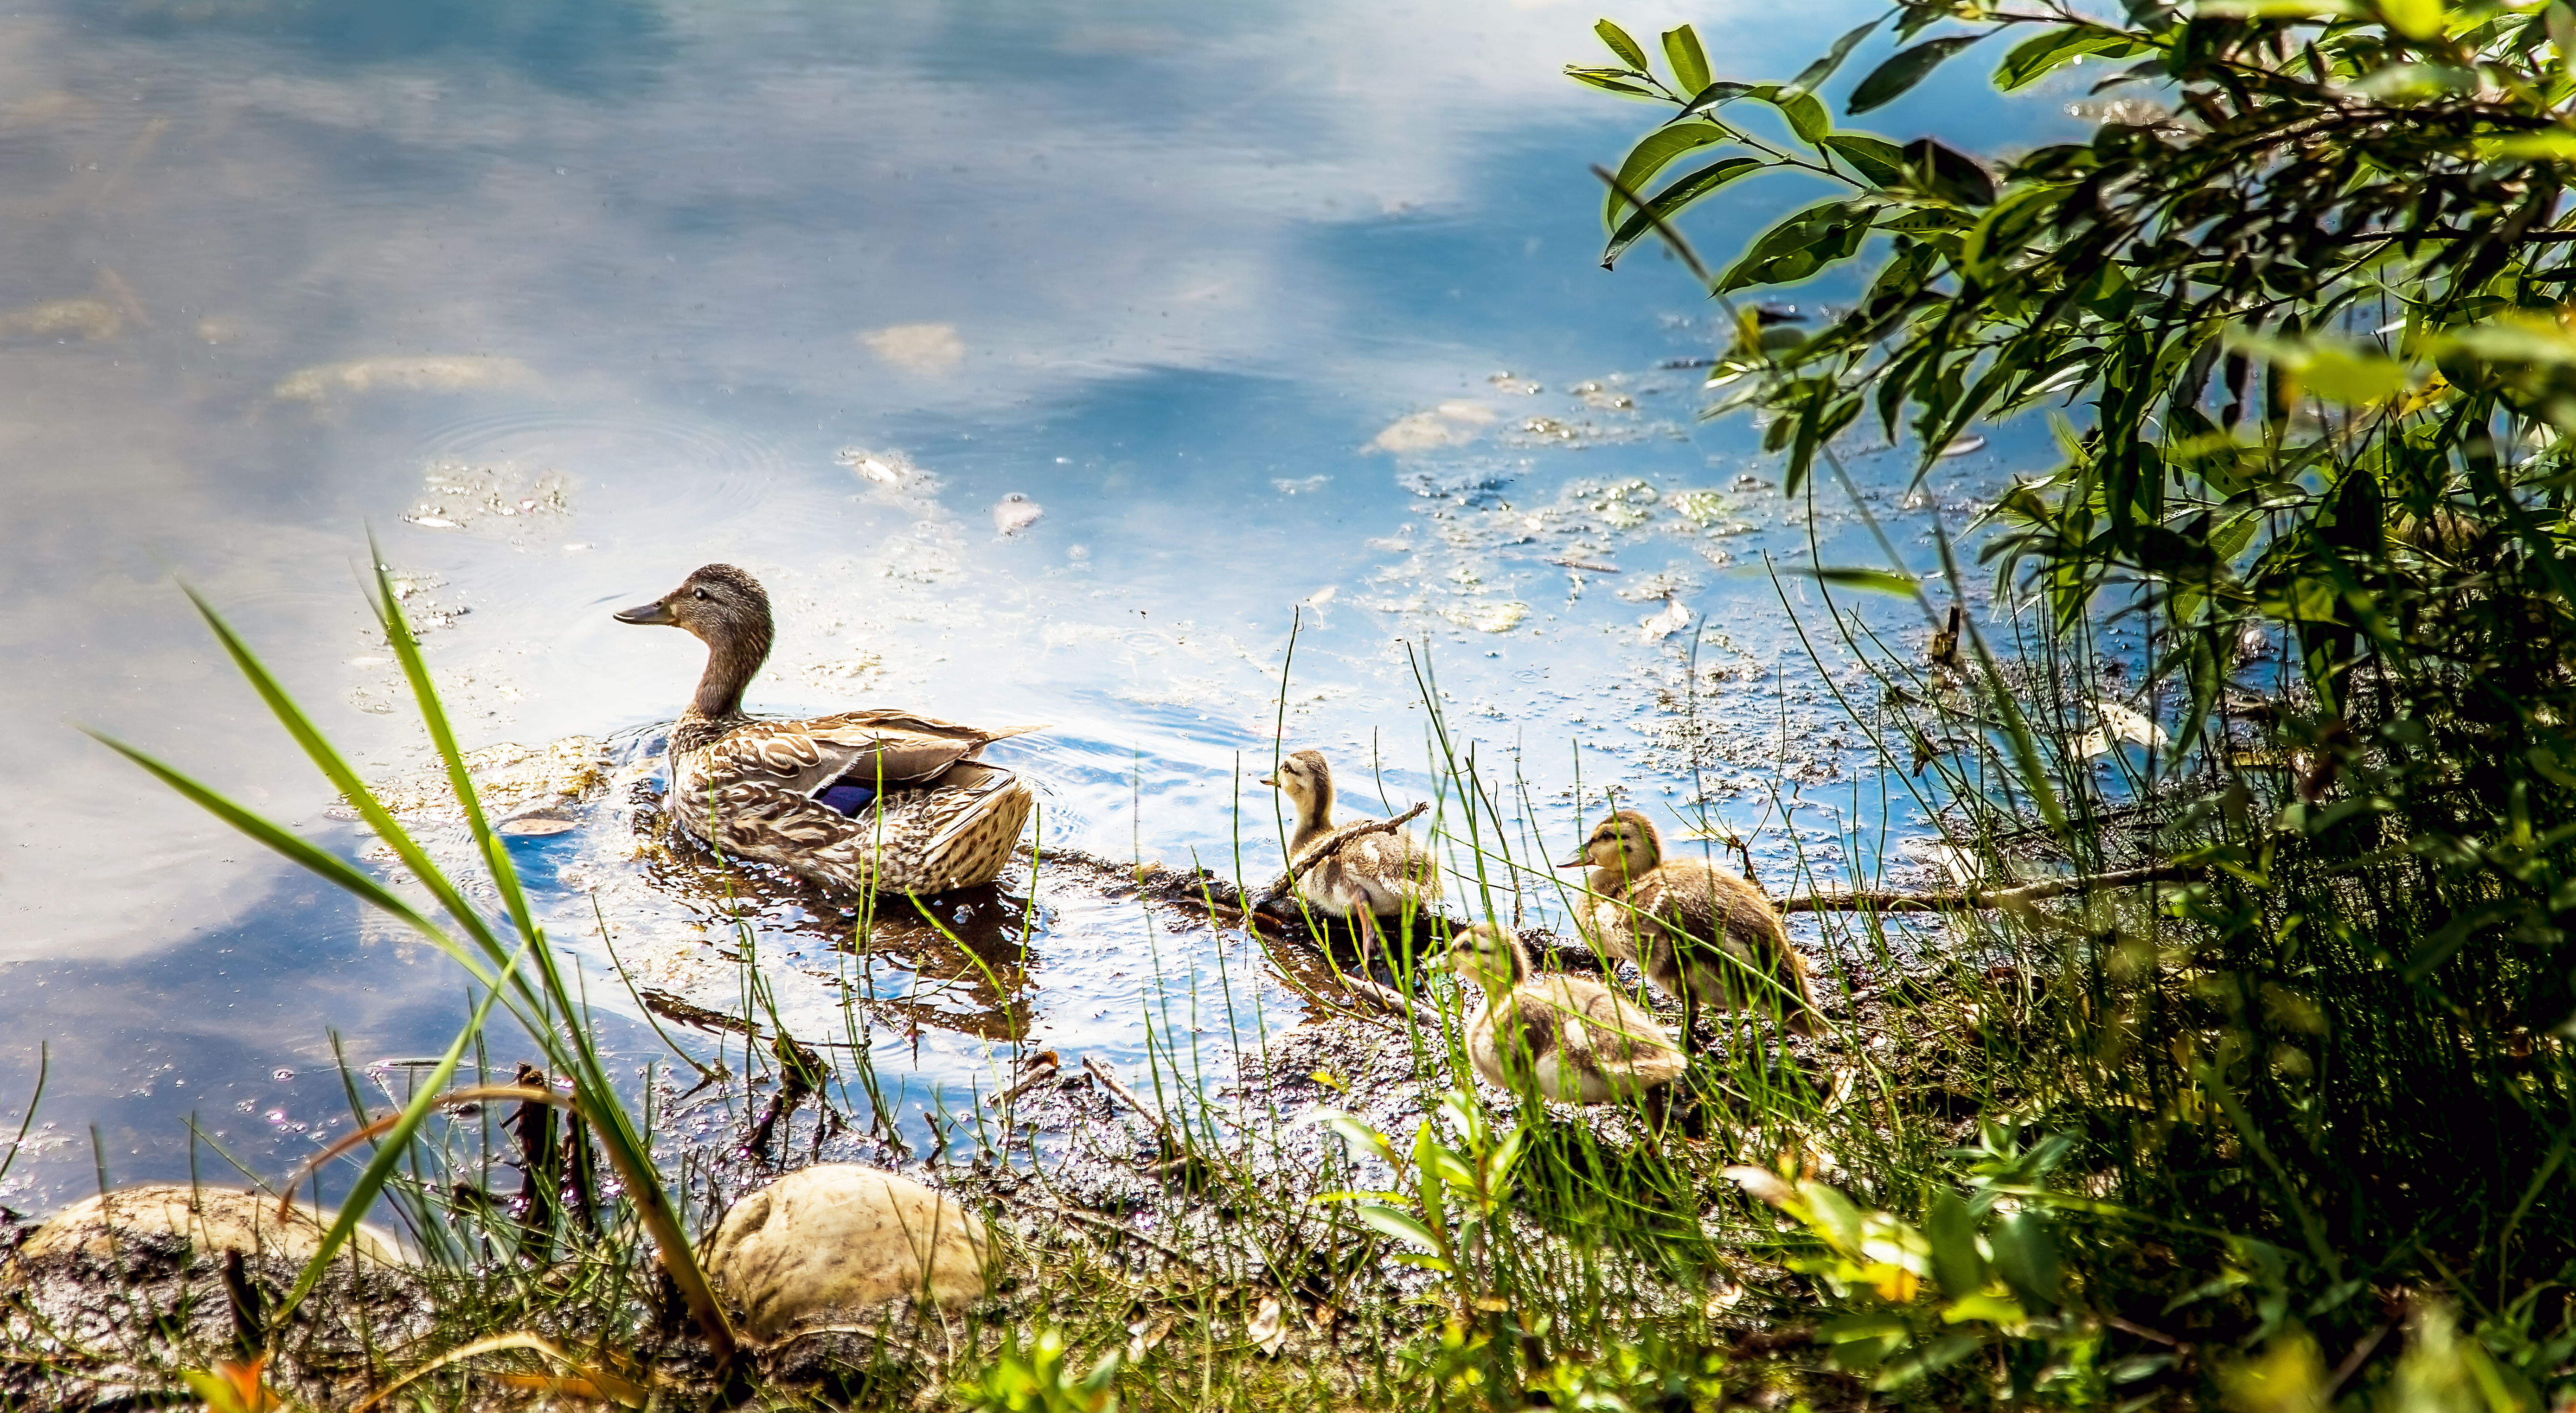 A mother duck leads two ducklings across a pond reflecting the sky.